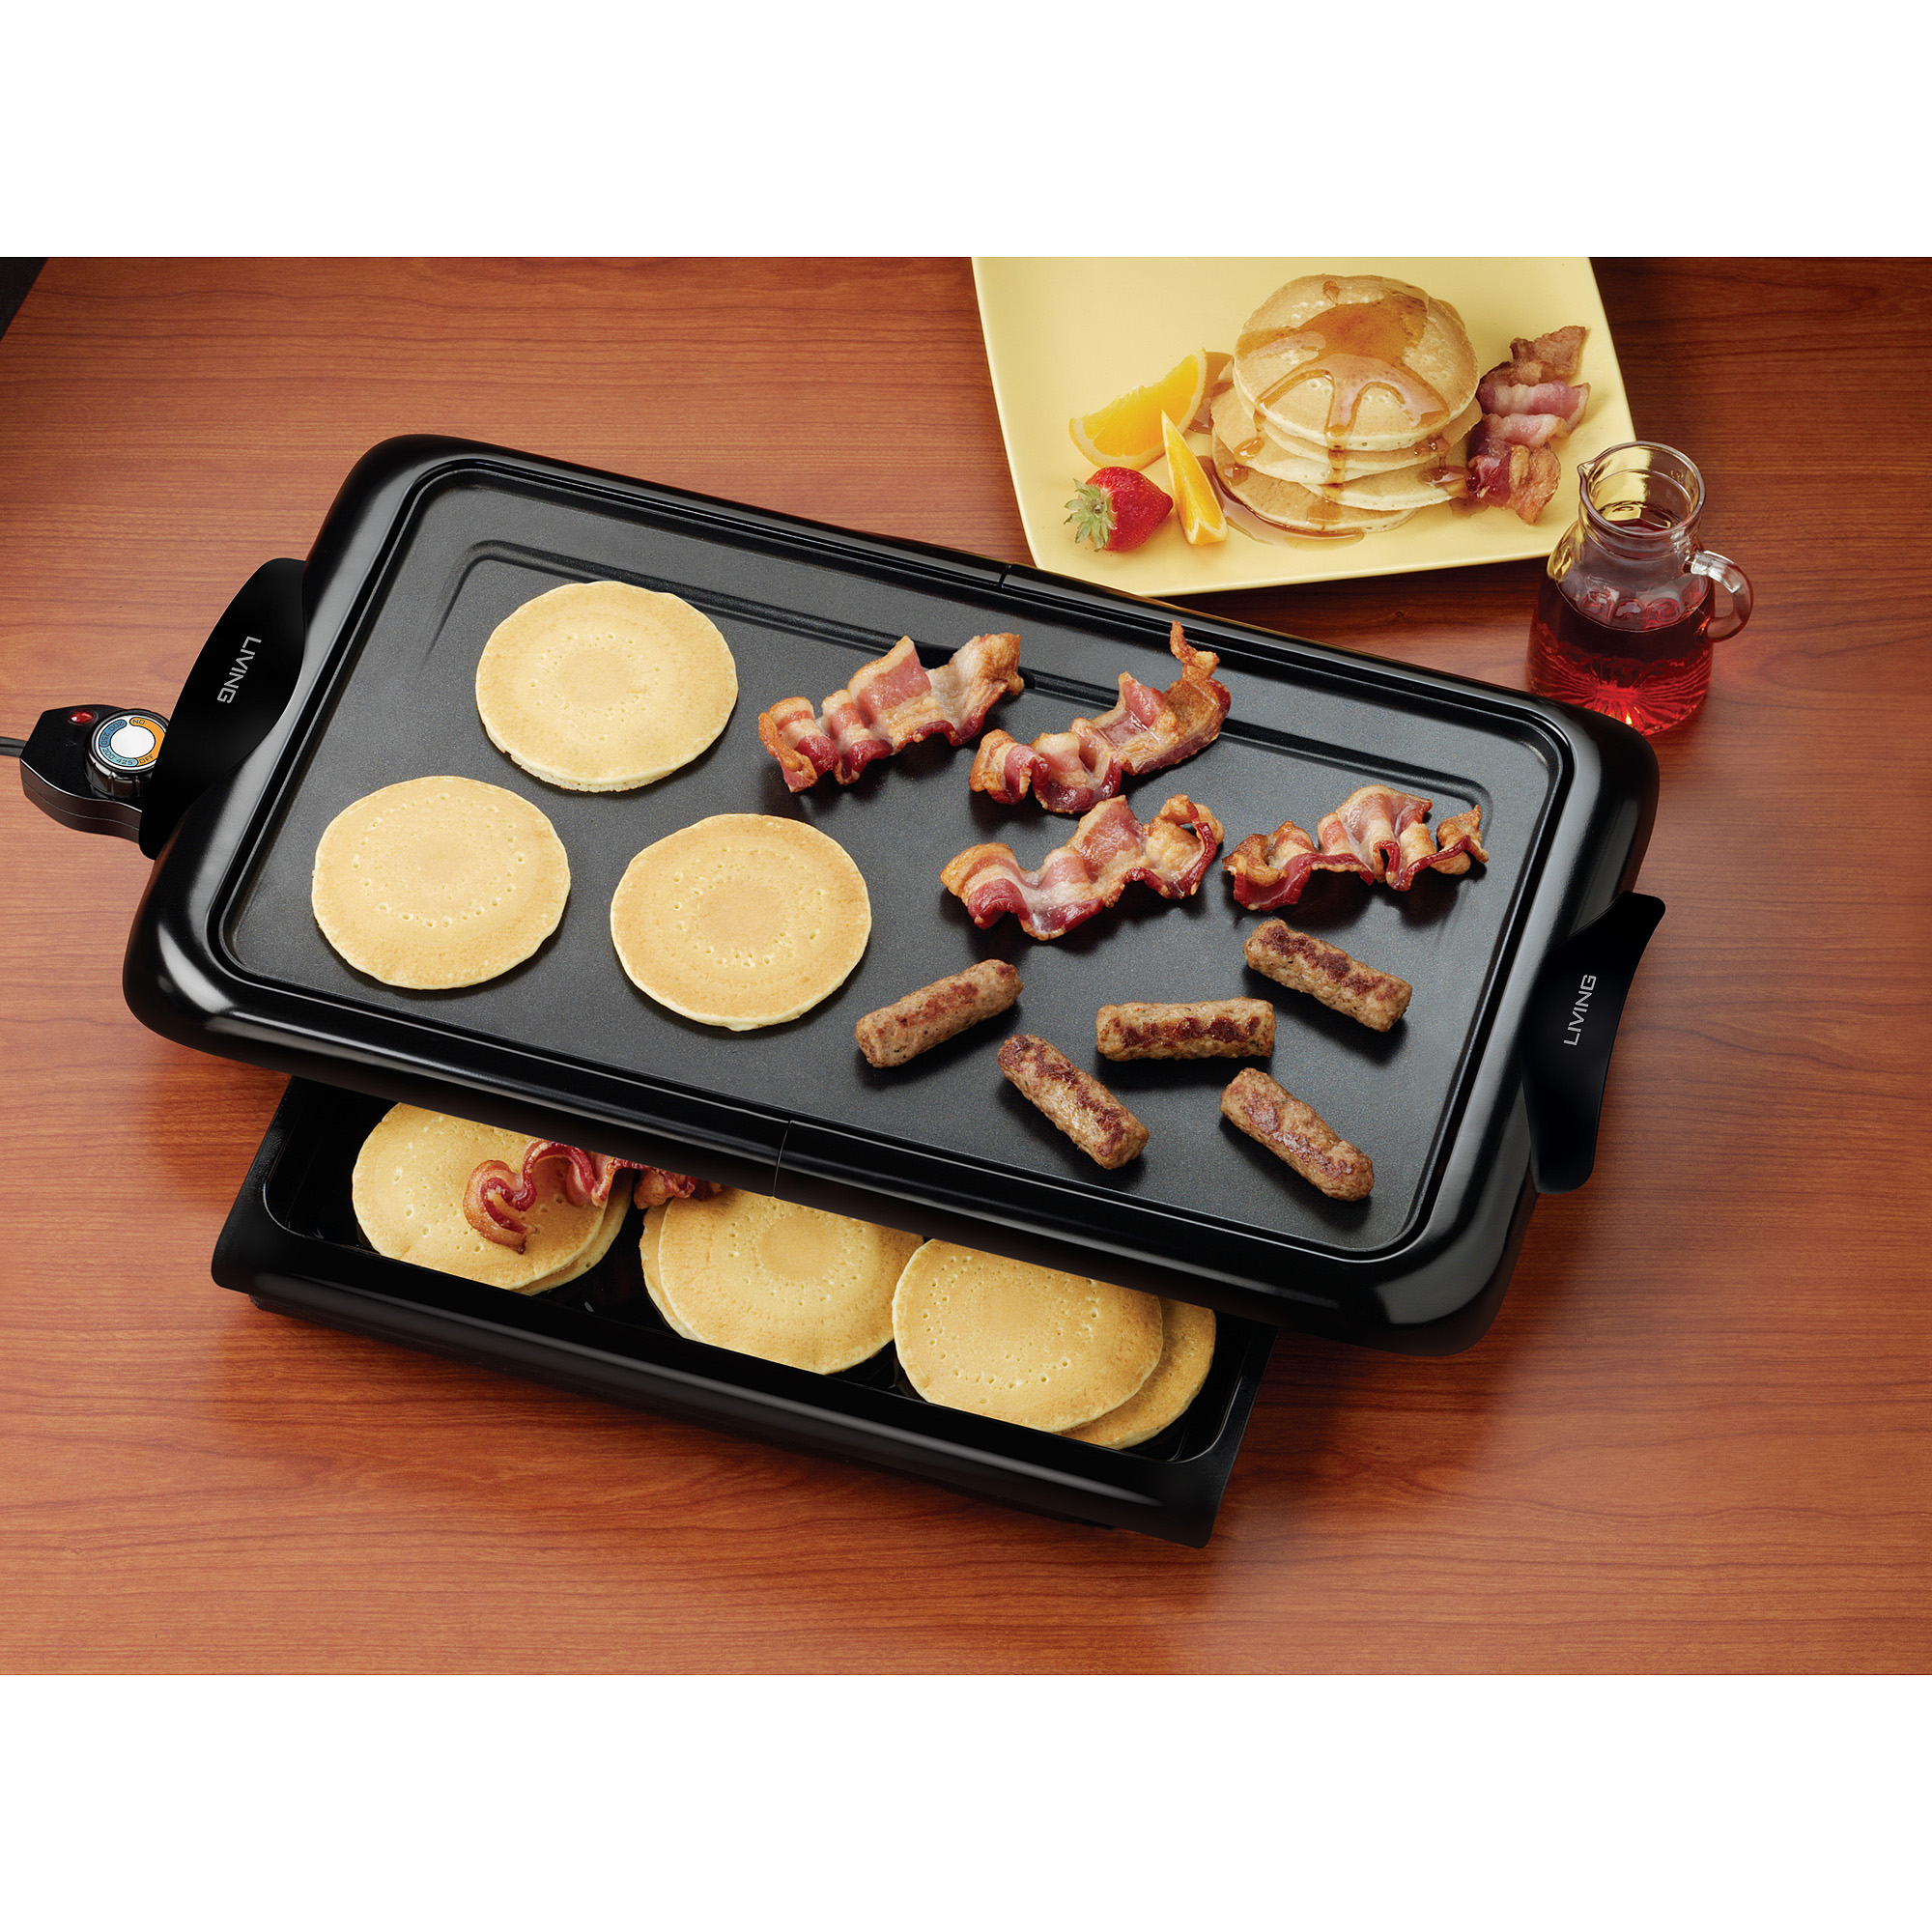 Nostalgia Electrics Living by Nostalgia Non-stick Griddle with Warming Drawer, NGD200